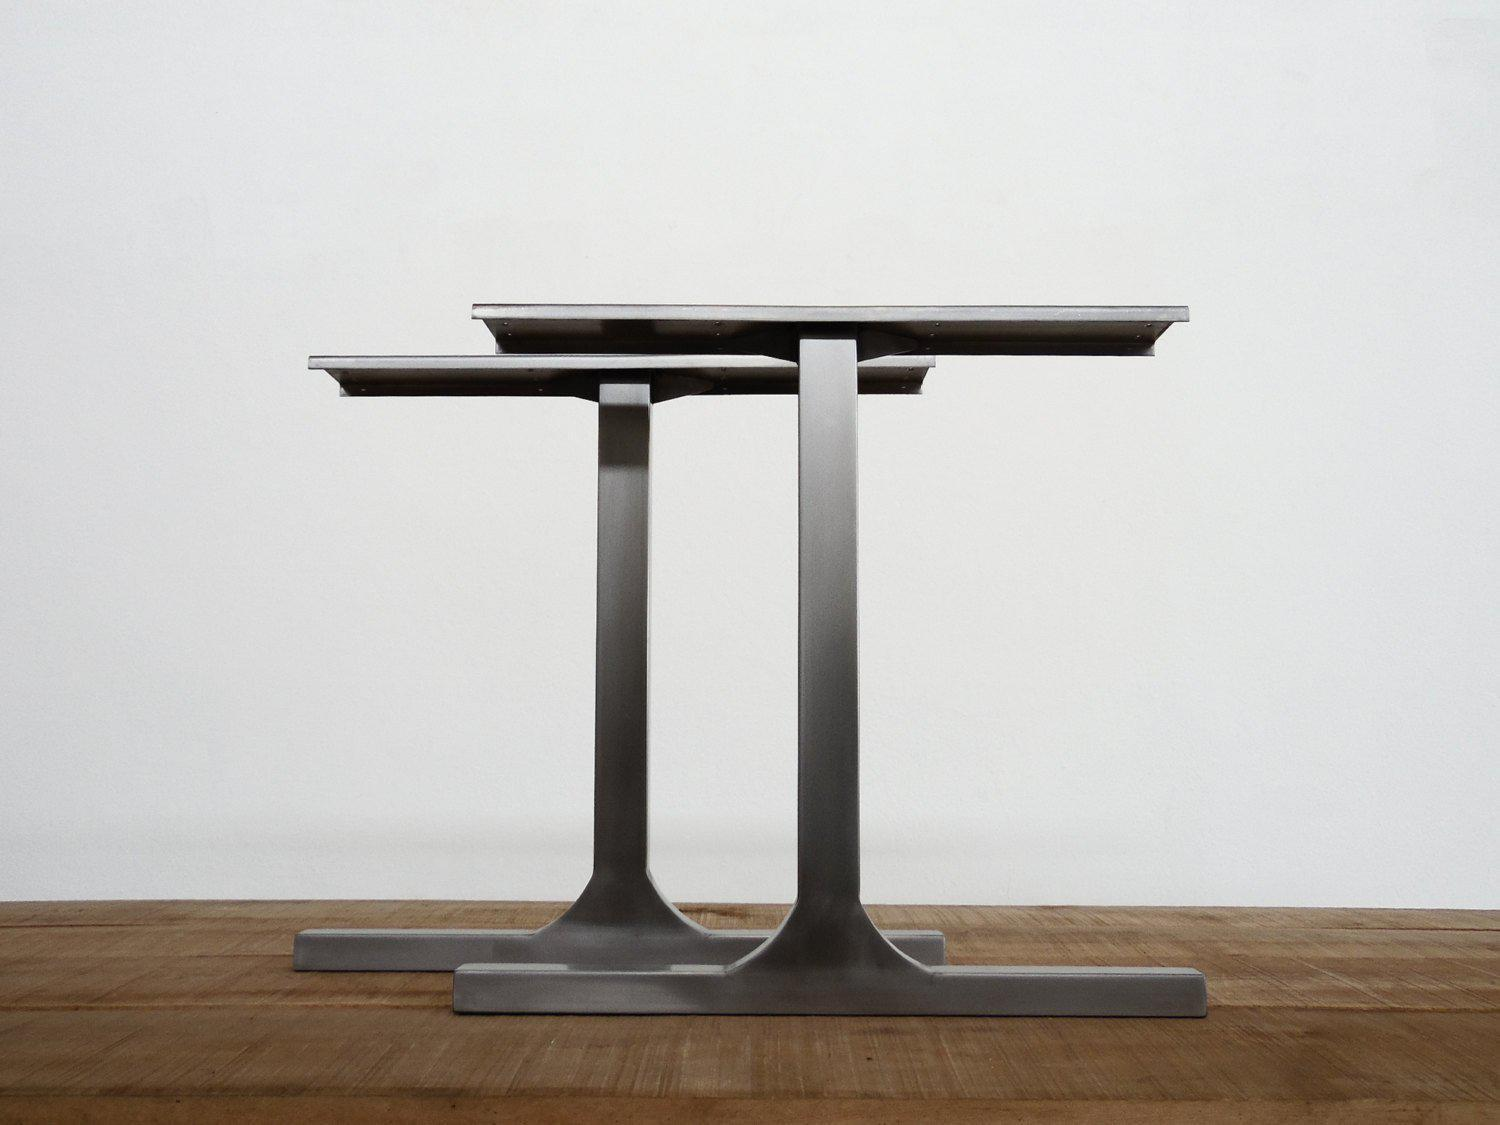 28 Single Bar Table Legs Stainless Steel Legs Collection